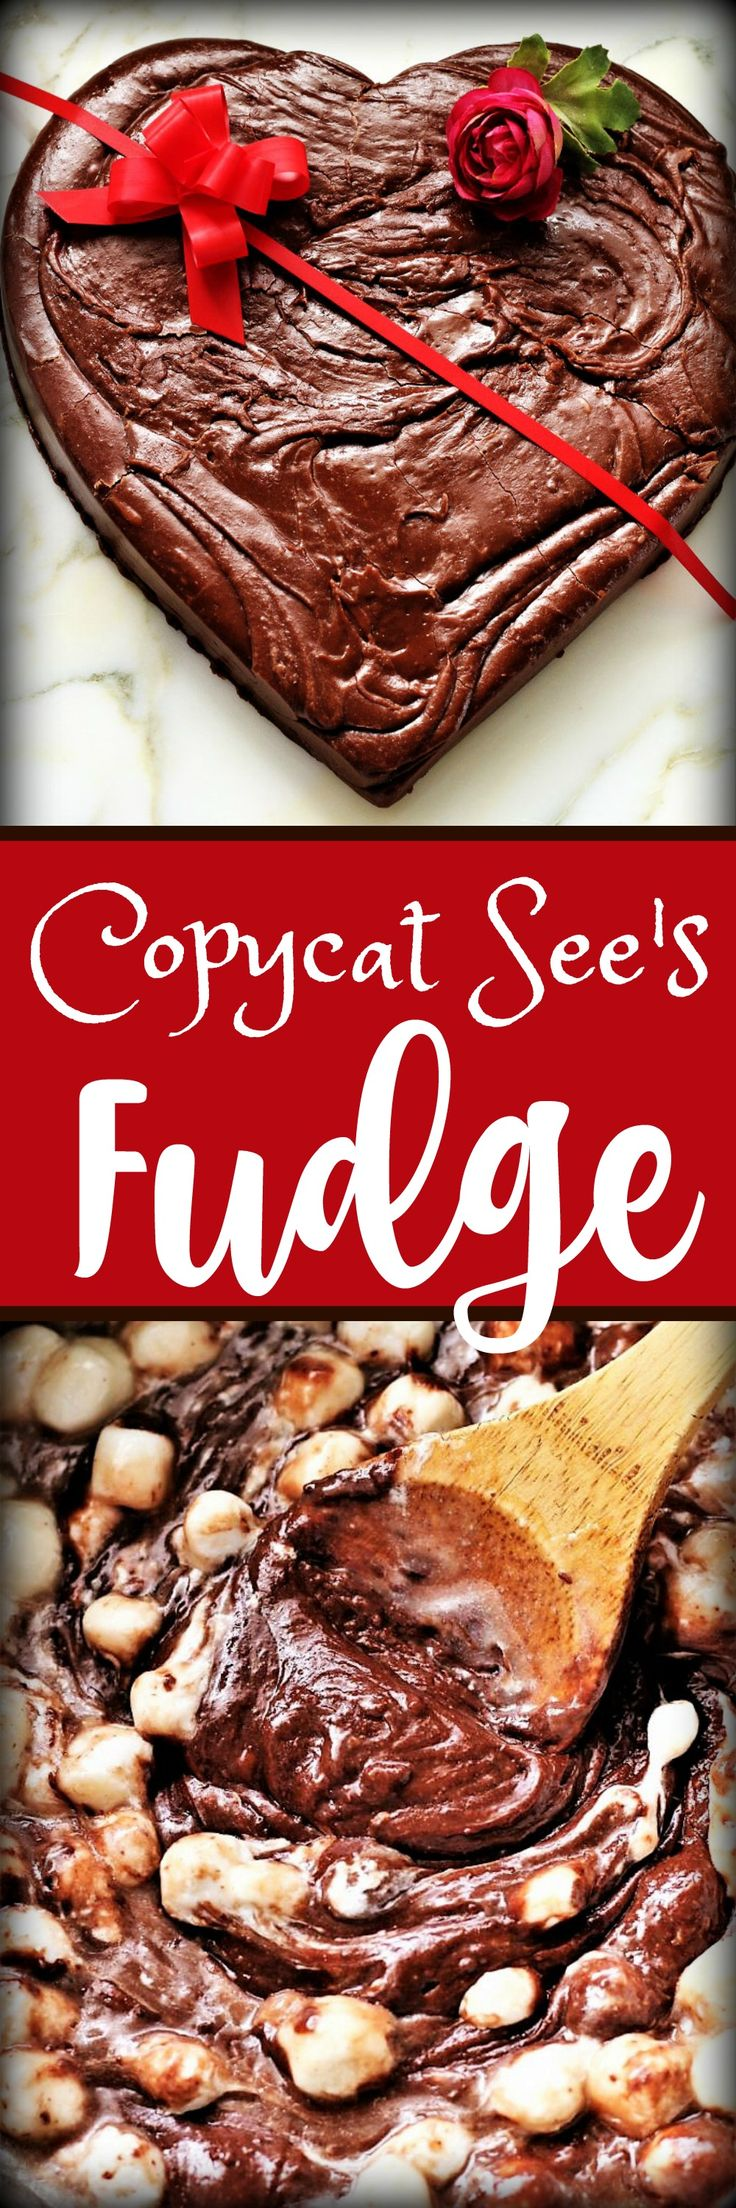 Copycat See's Fudge, My Recipe Treasures Blog